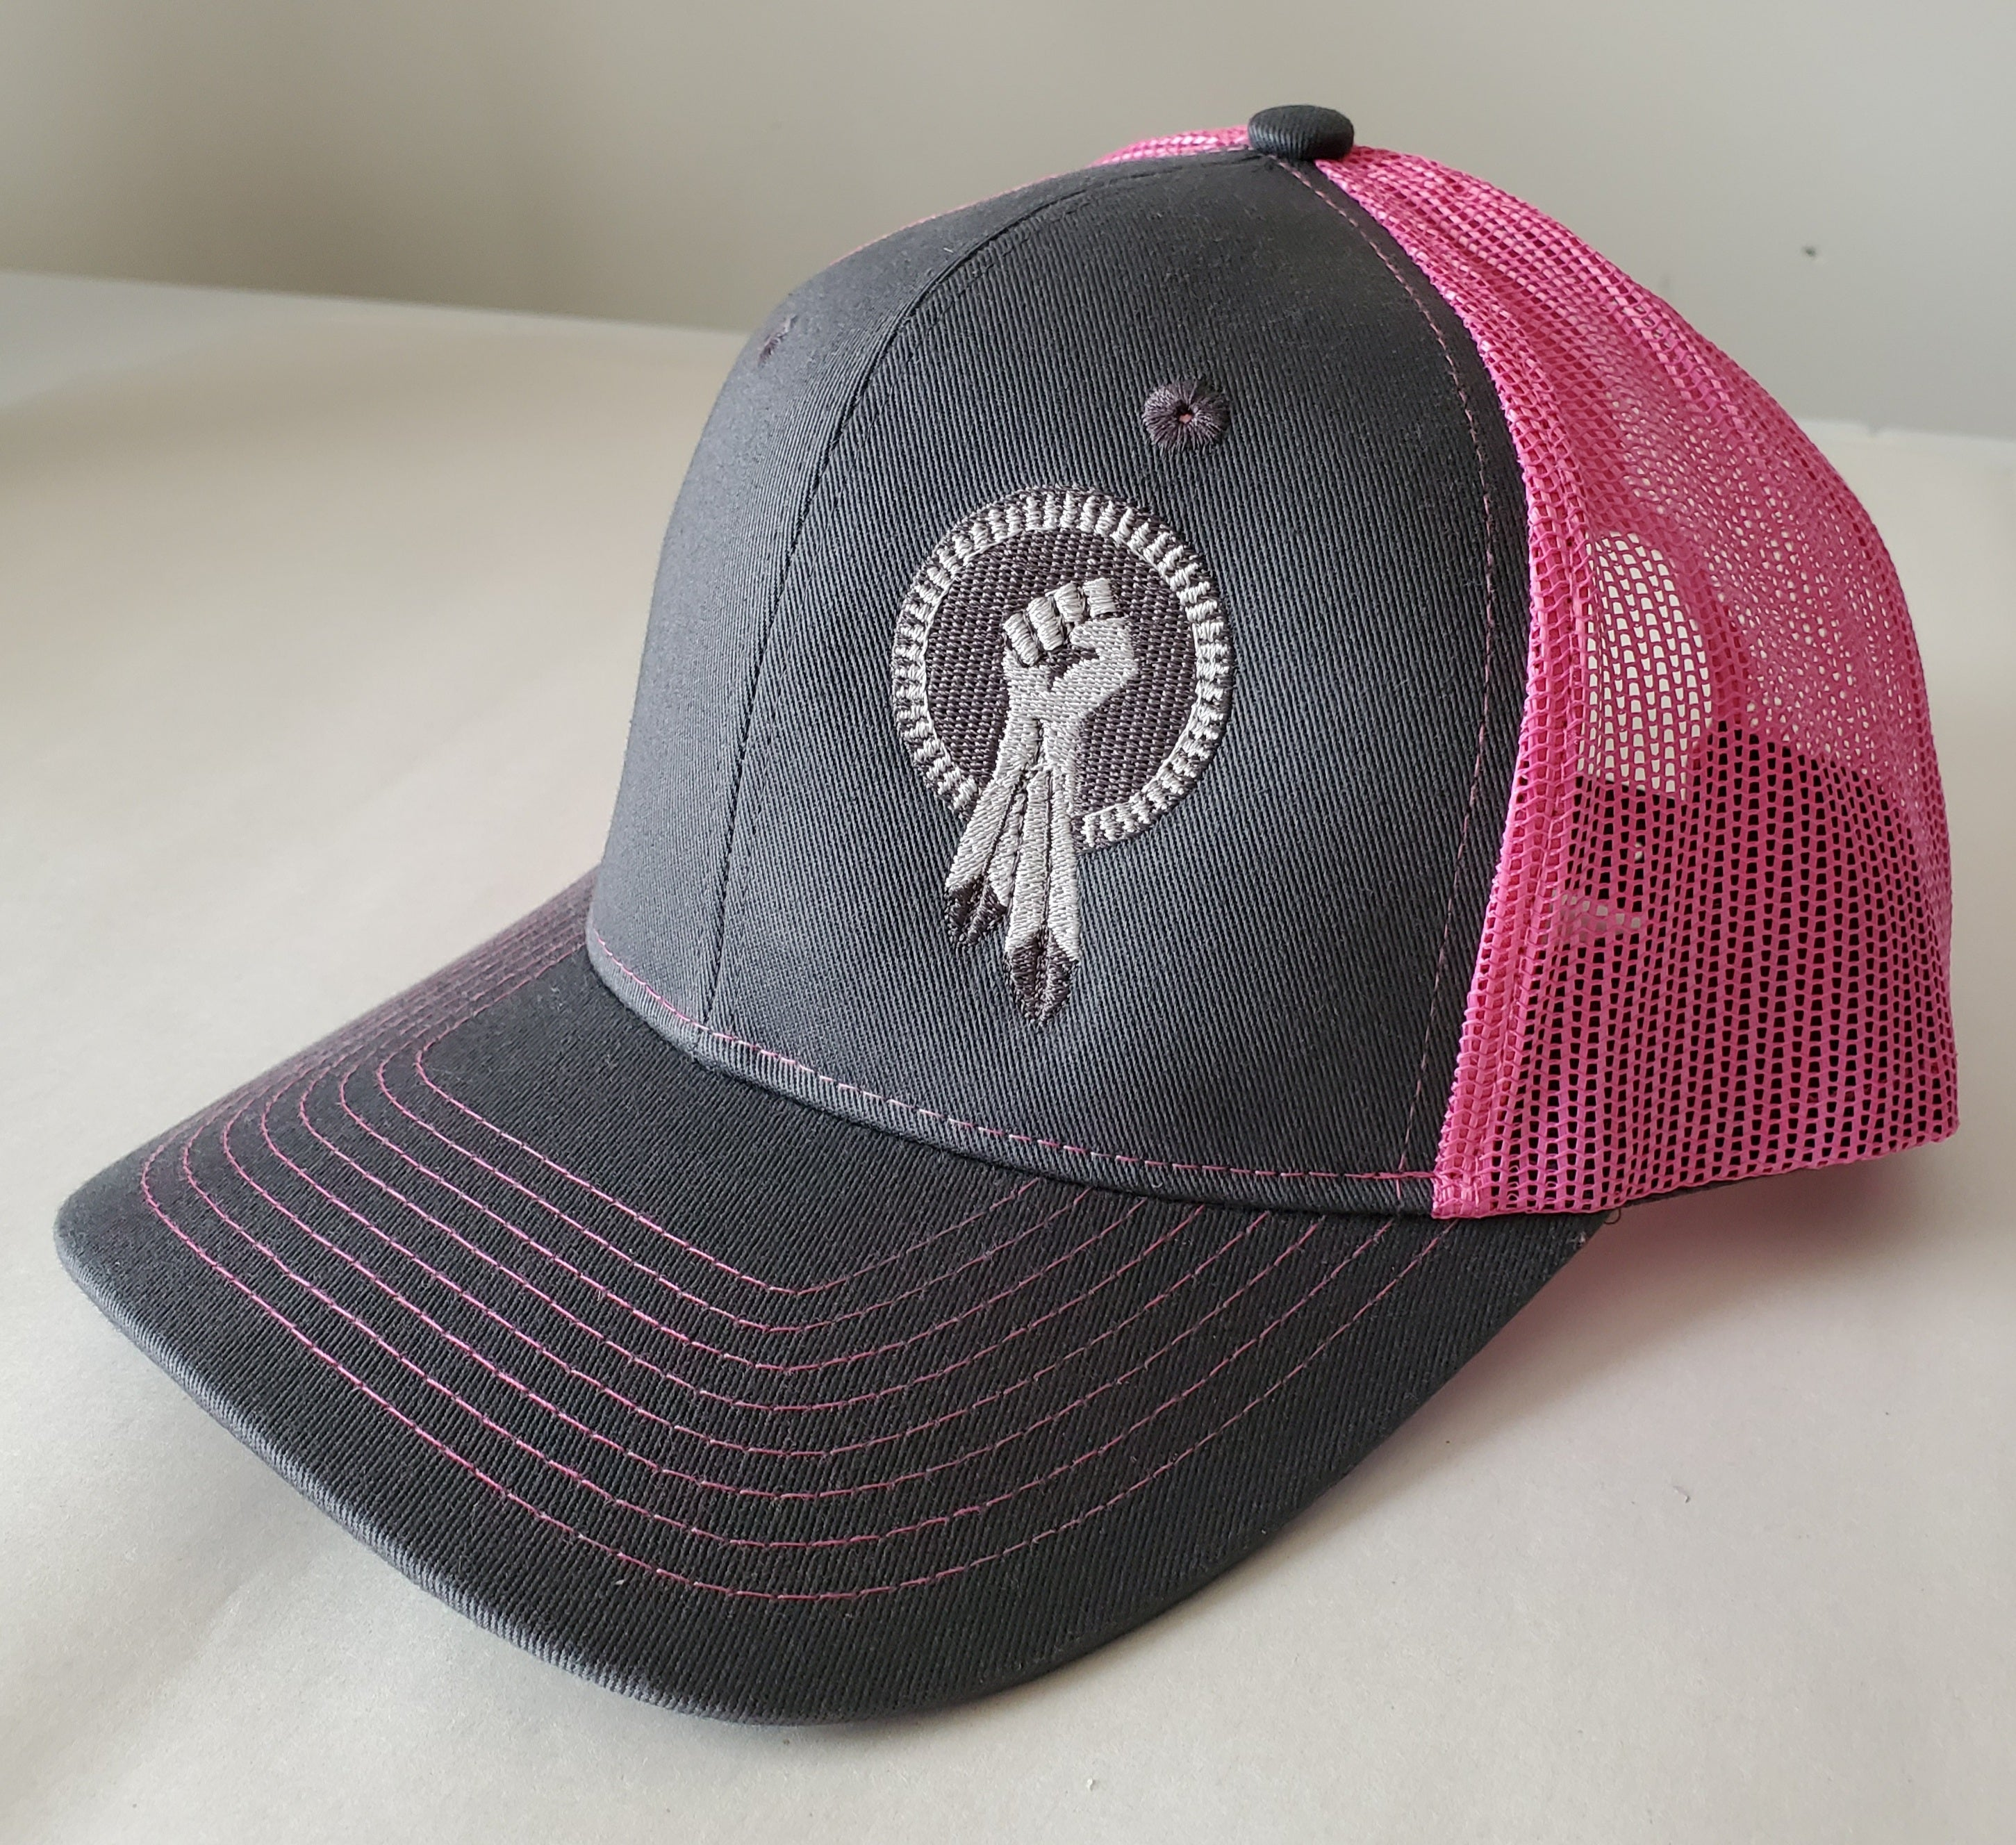 N8V MOVEMENT Snap Back Pink Cap with silver thread